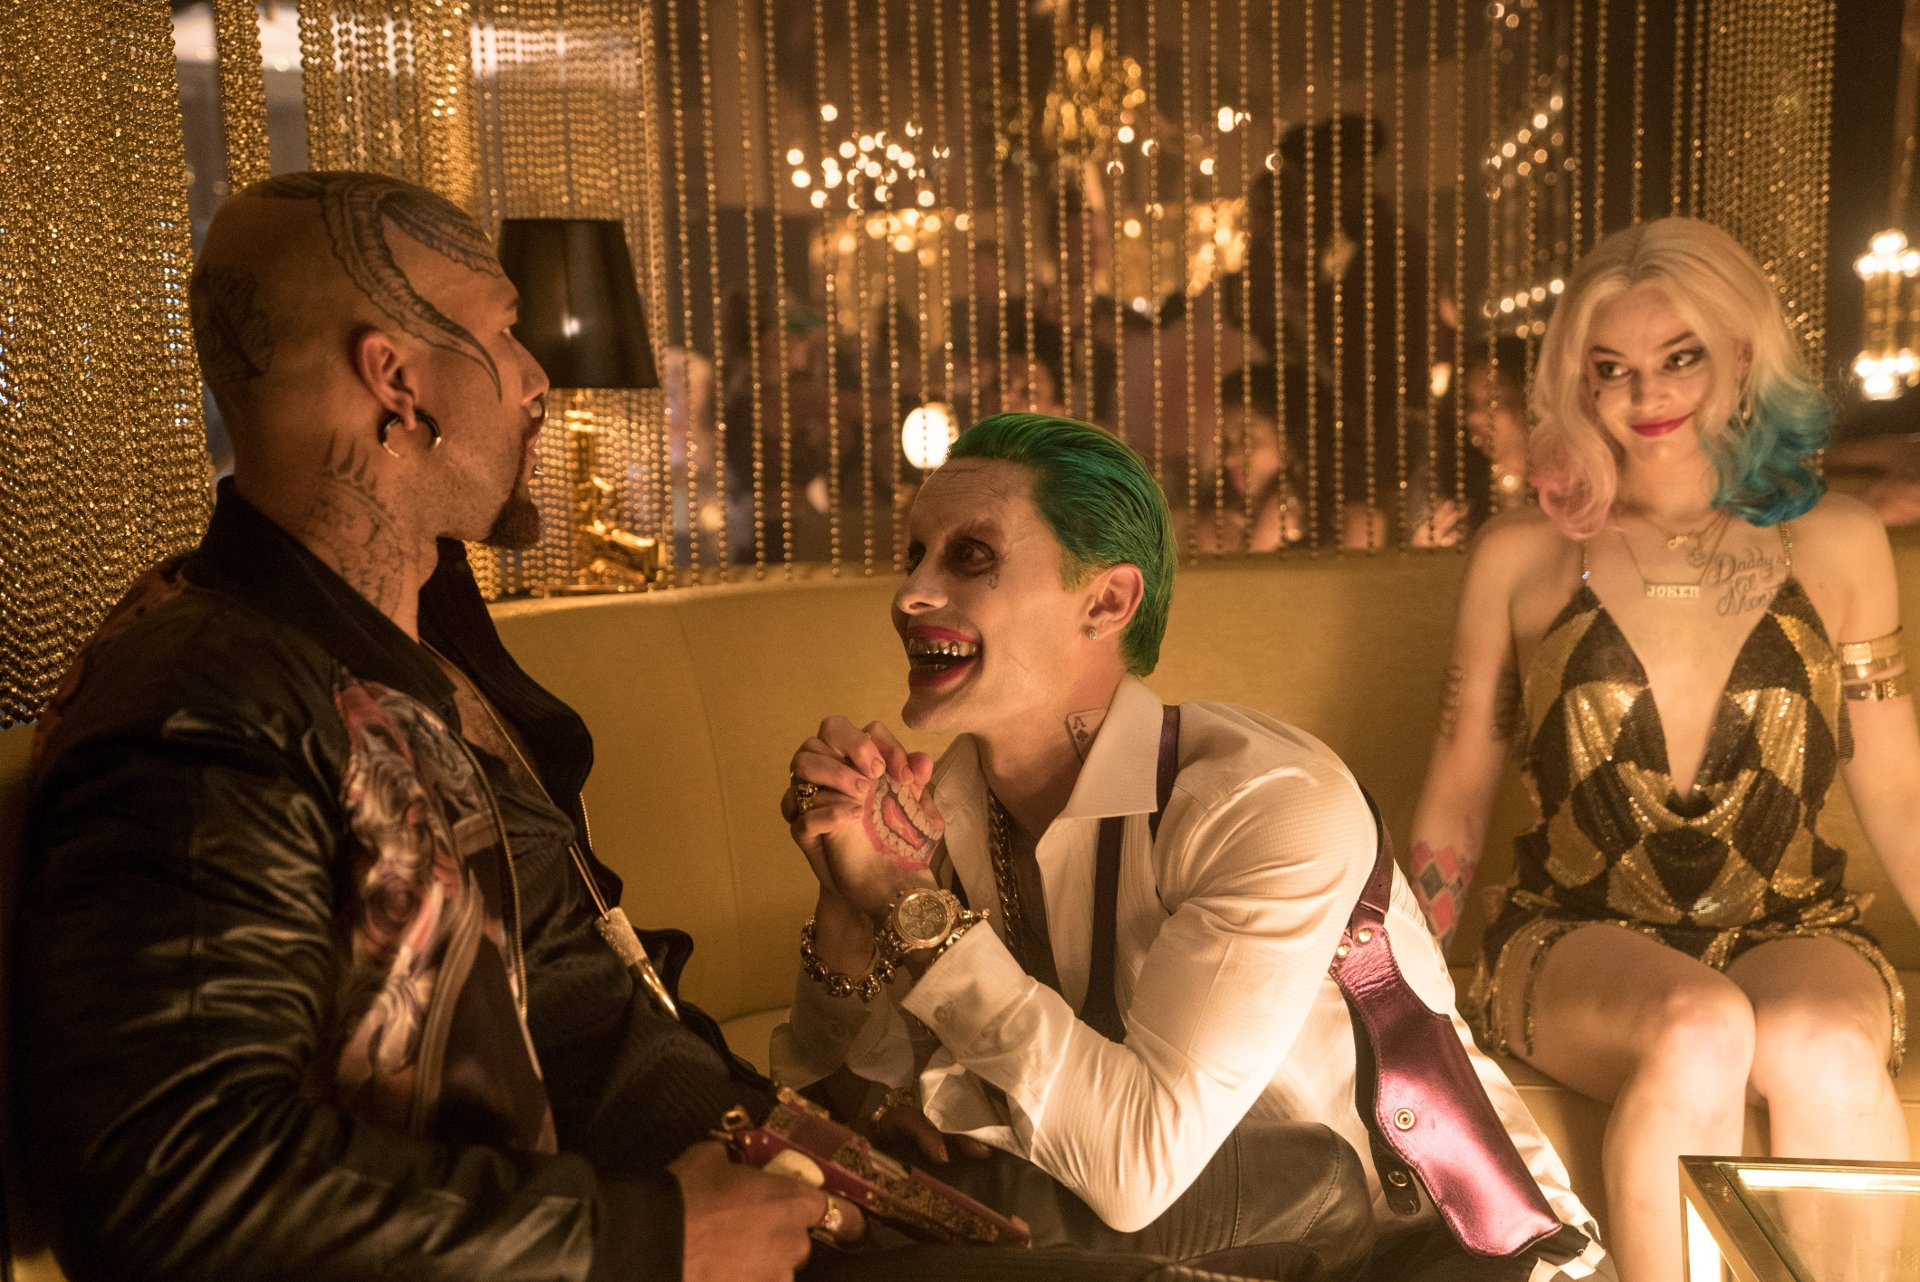 Jared leto images jared leto hd wallpaper and background photos - Movie Suicide Squad Harley Quinn Jared Leto Joker Margot Robbie Will Smith Deadshot Wallpaper